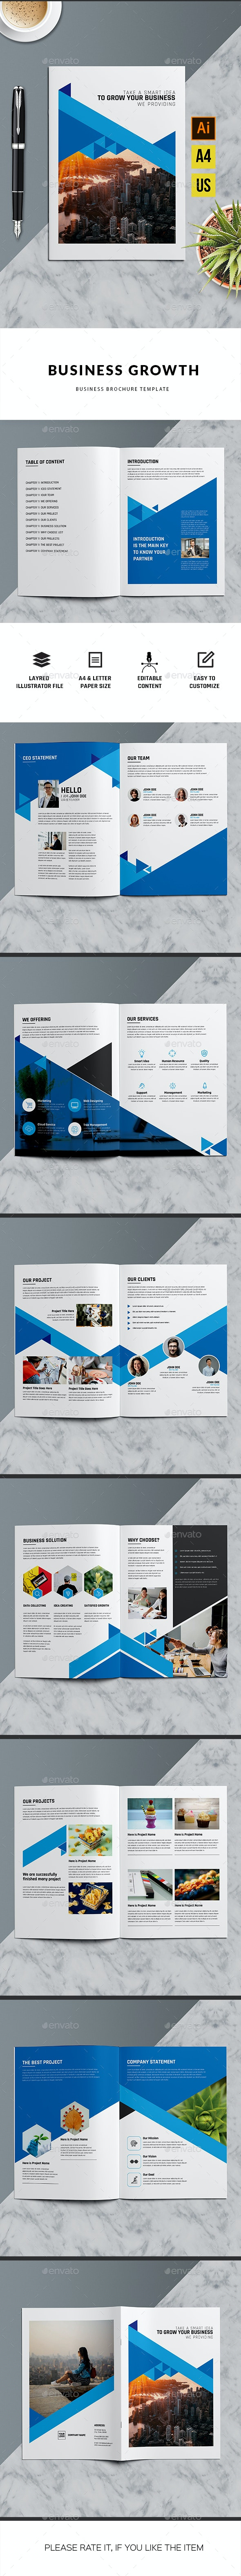 Business Growth | Illustrator Template - Corporate Brochures